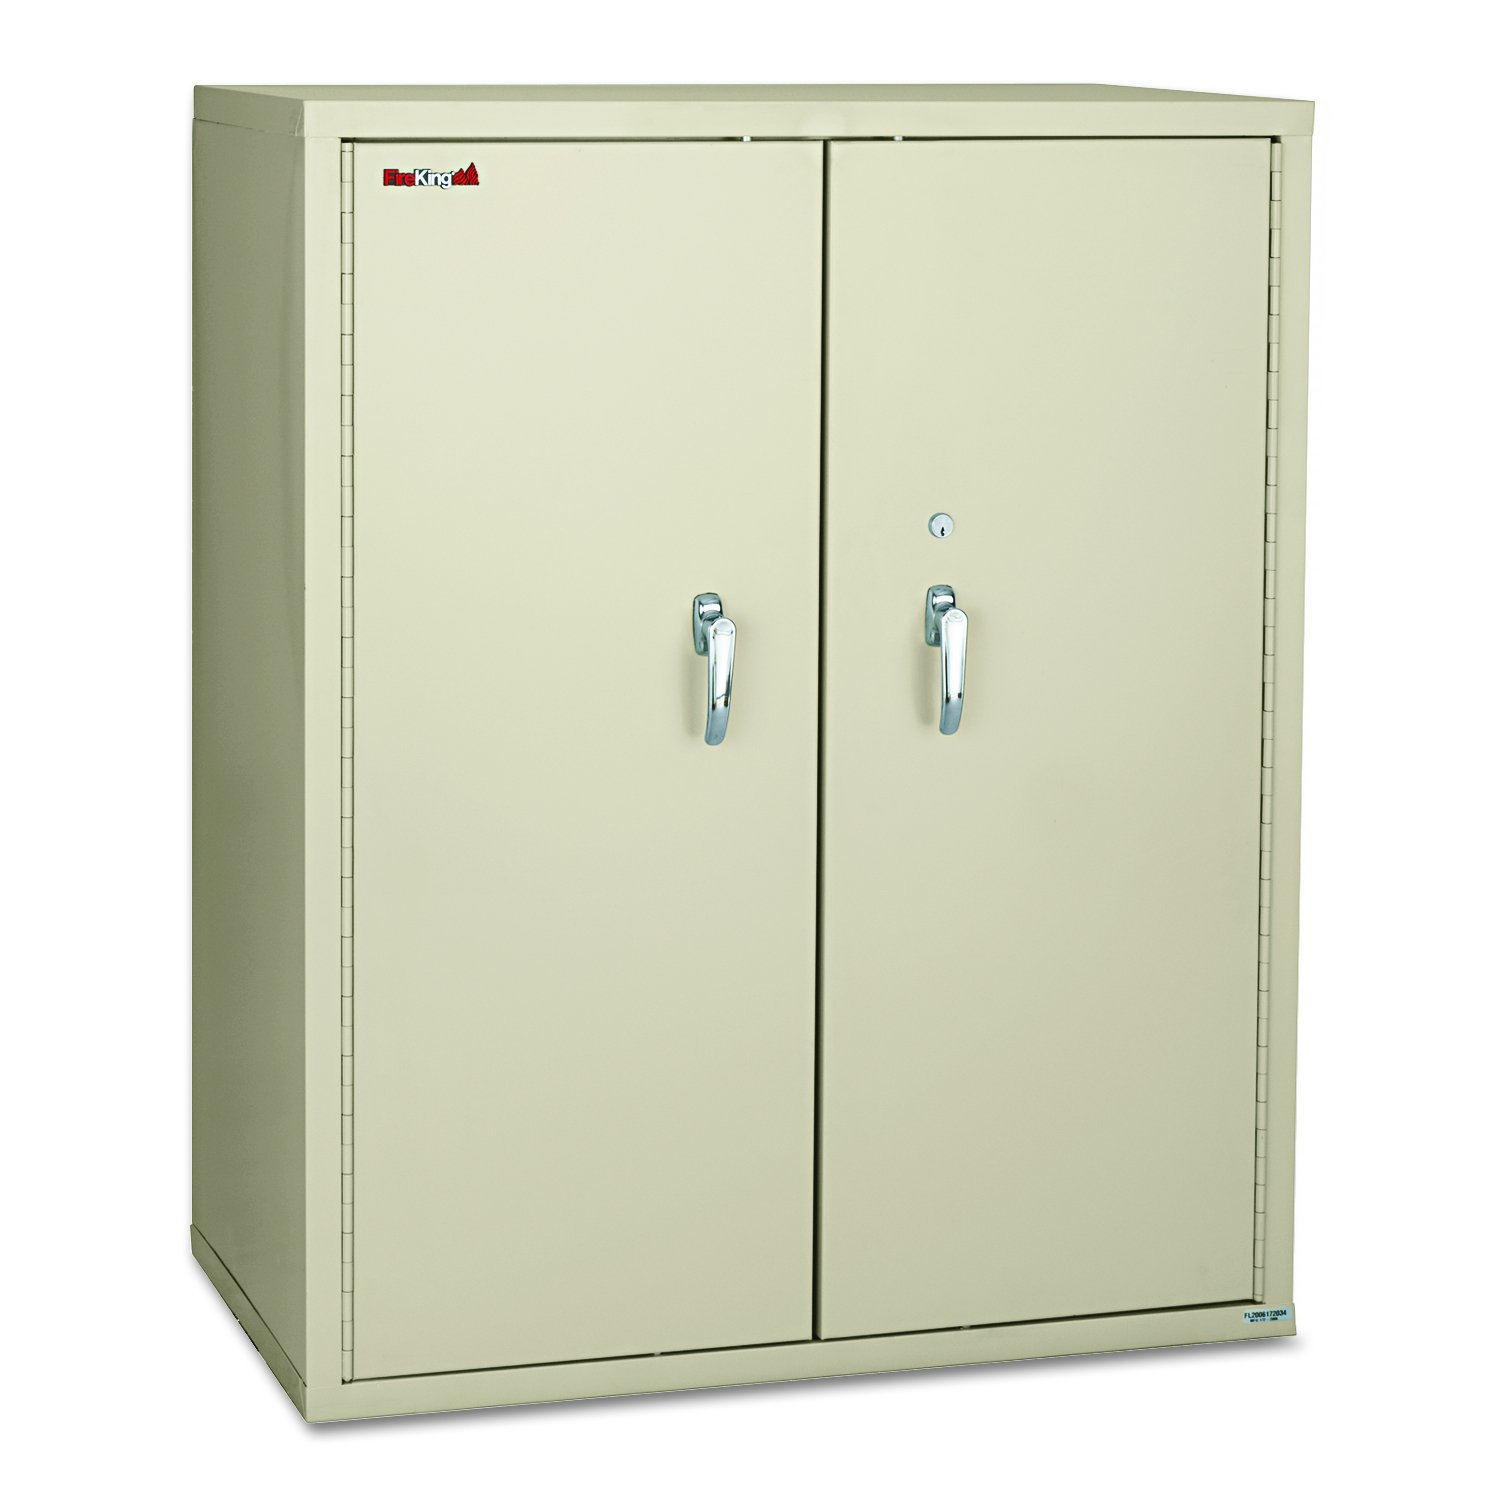 Comfy fireproof filing cabinets for office furniture ideas with fireproof file cabinets